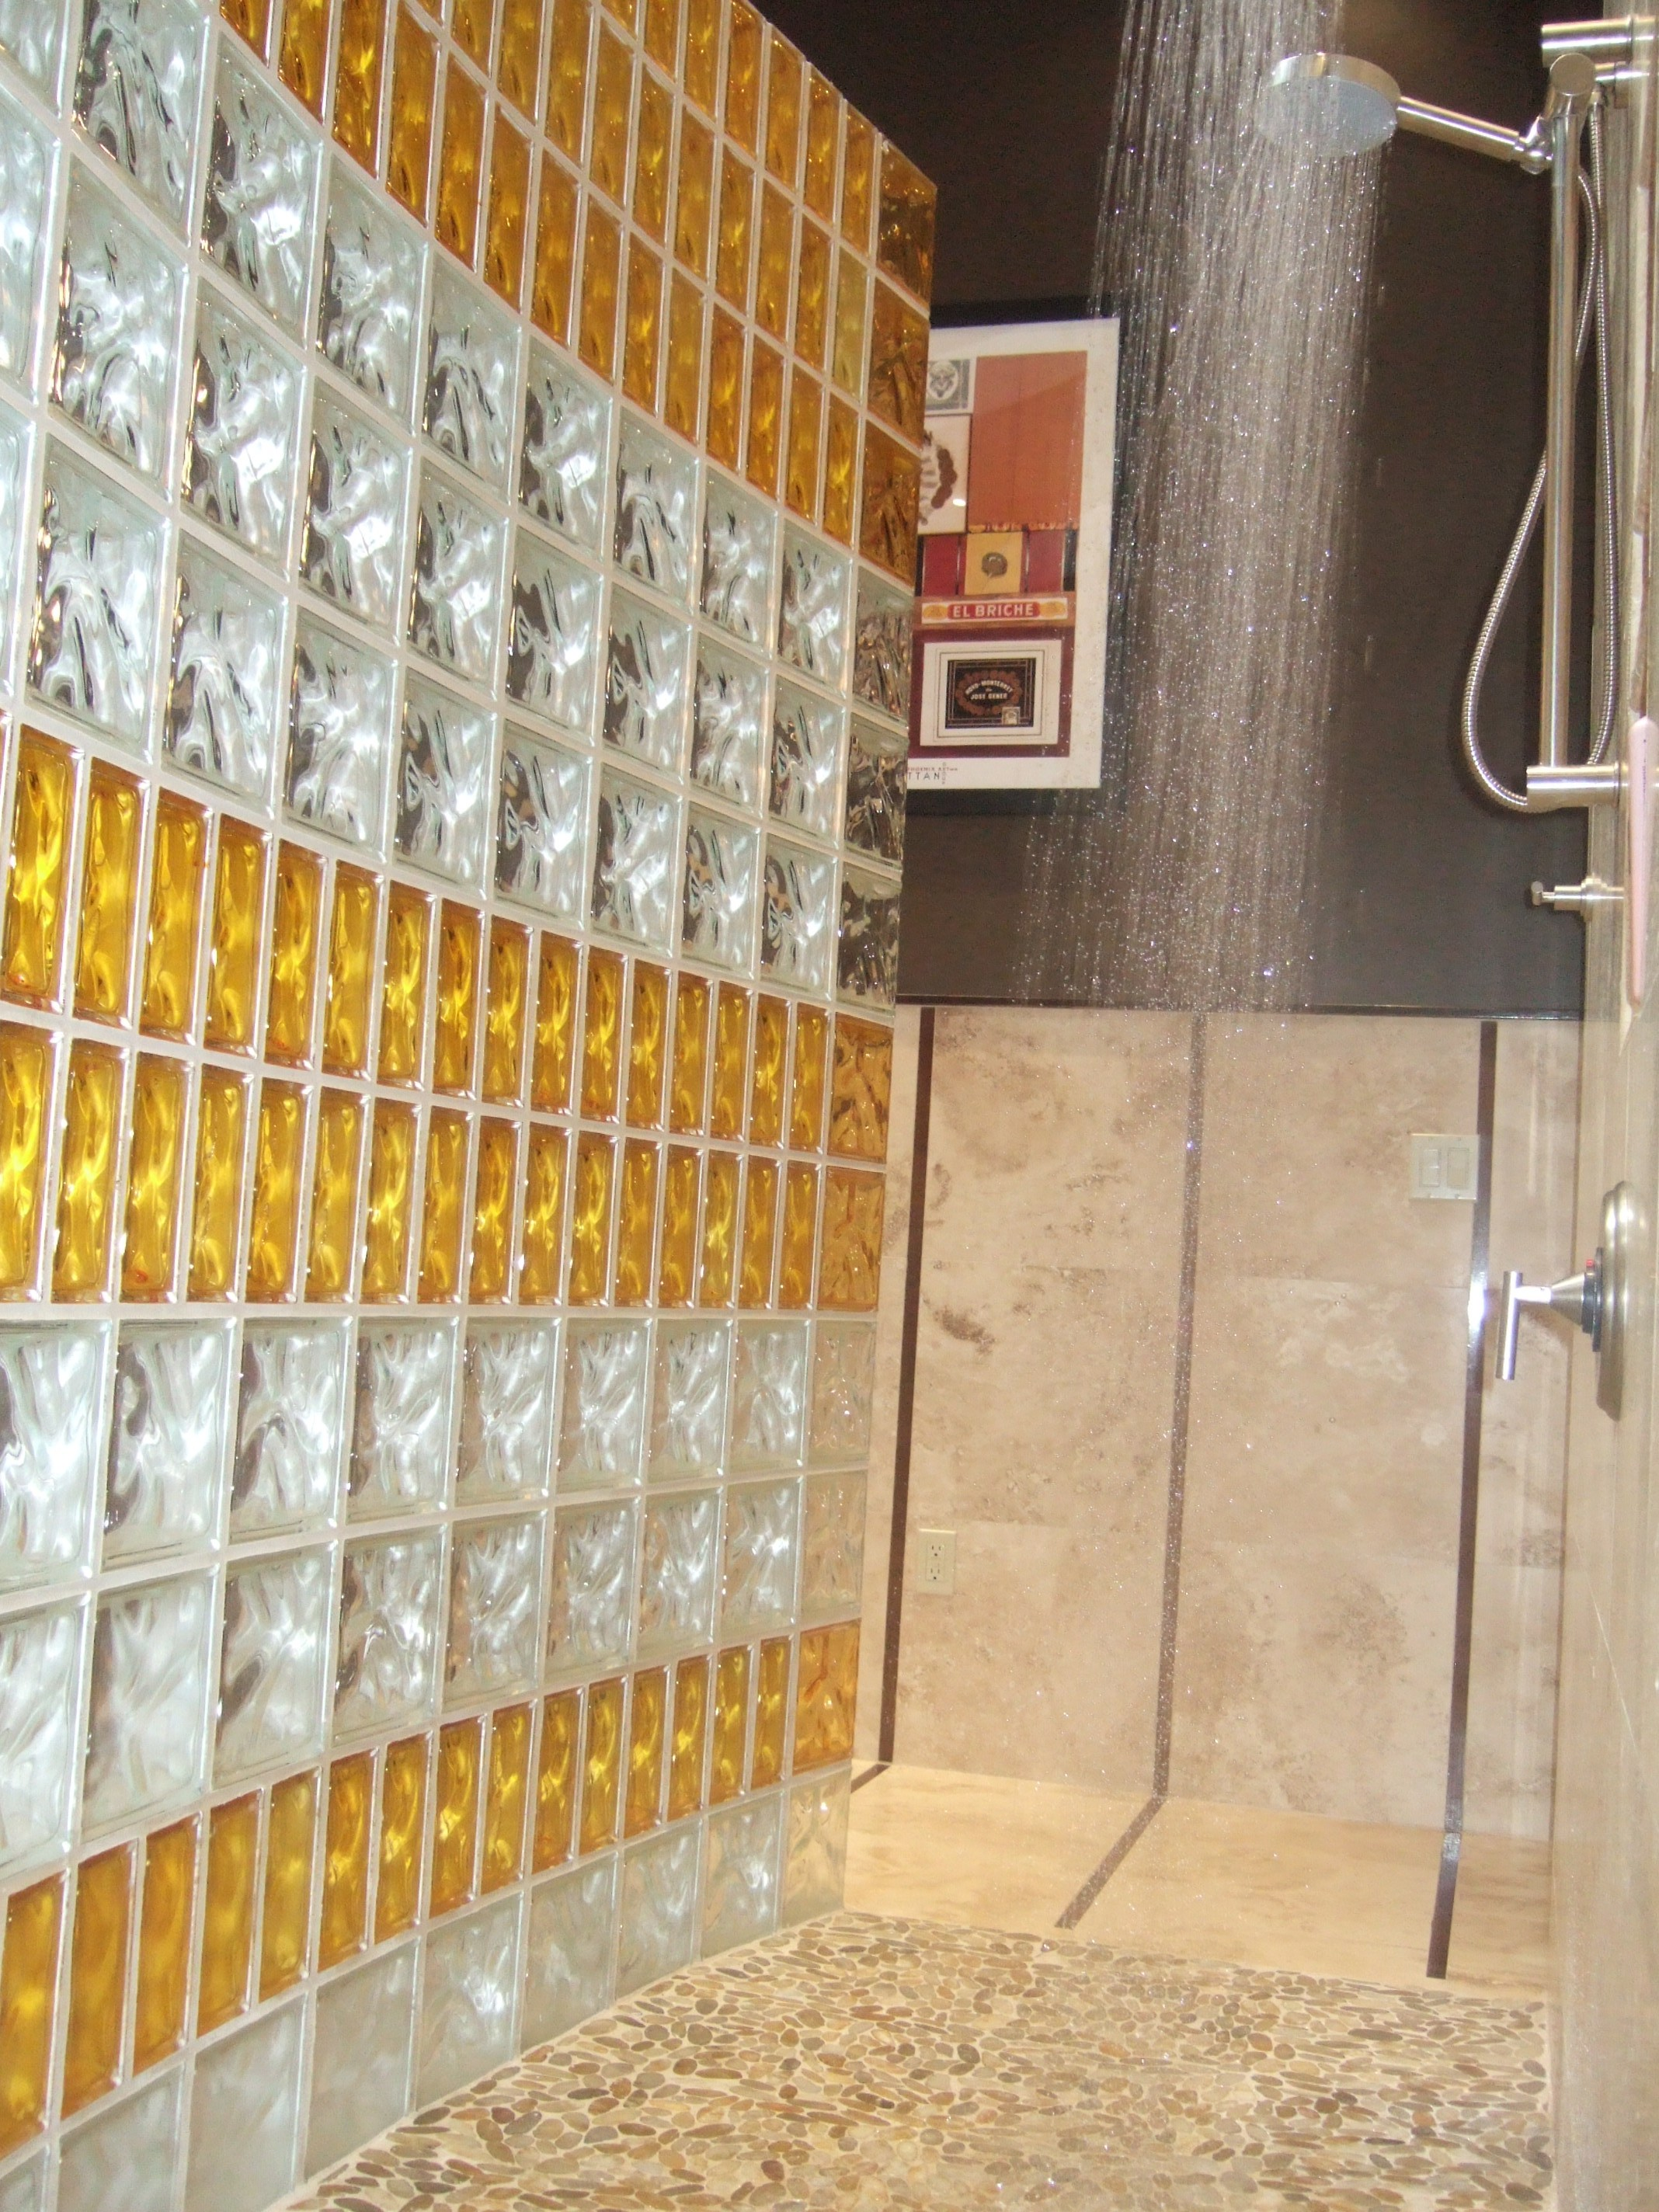 New Thinner Glass Block Shower & Wall Product Saves Money, Space And Increases Design Options ...